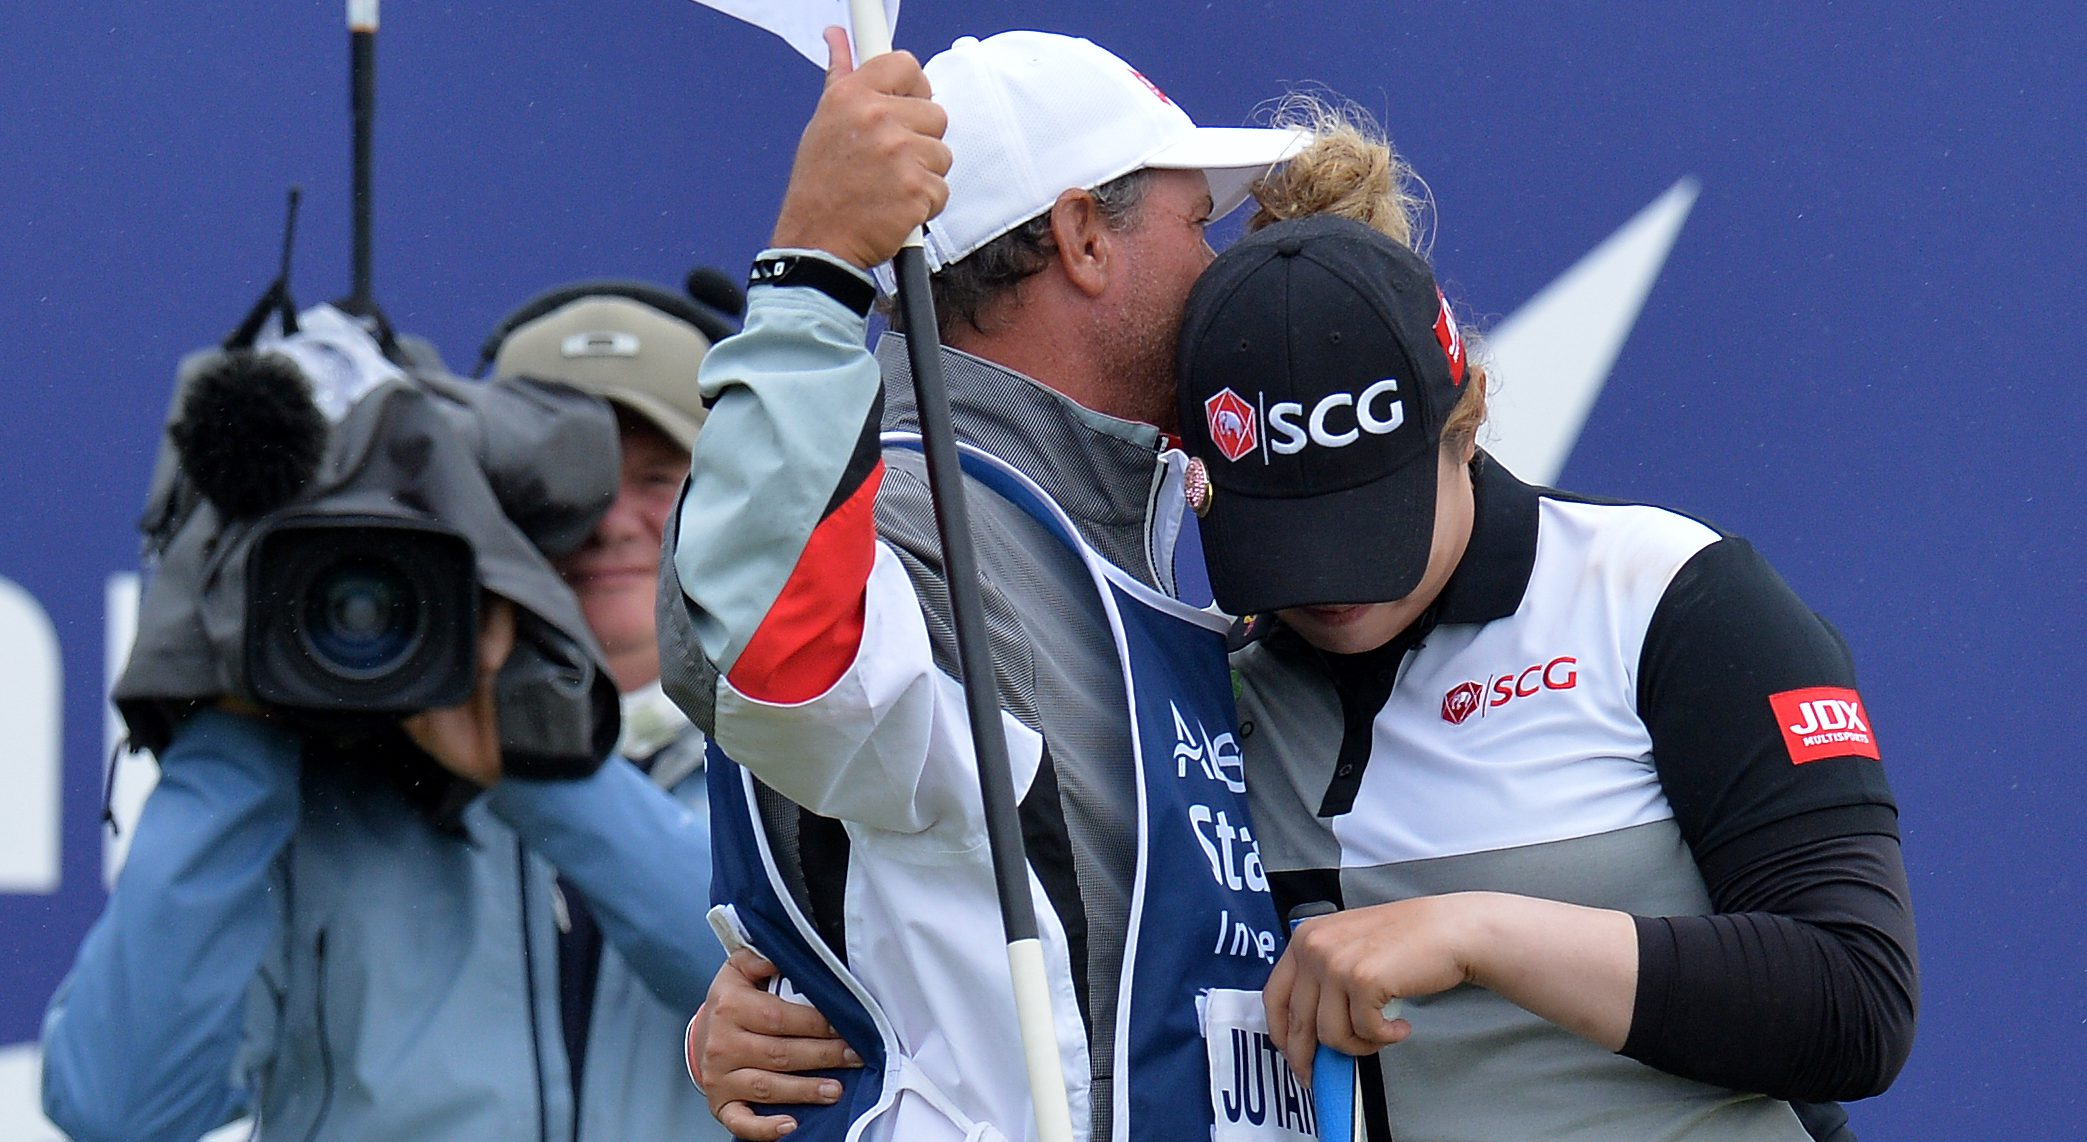 GULLANE, SCOTLAND - JULY 29: Ariya Jutanugarm of Thailand embraces her caddie after sinking her final putt at the 18th green to wins the Ladies Scottish Open during the final day of the Aberdeen Ladies Scottish Open at Gullane Golf Course on July 29, 2018 in Gullane, Scotland. (Photo by Mark Runnacles/Getty Images)